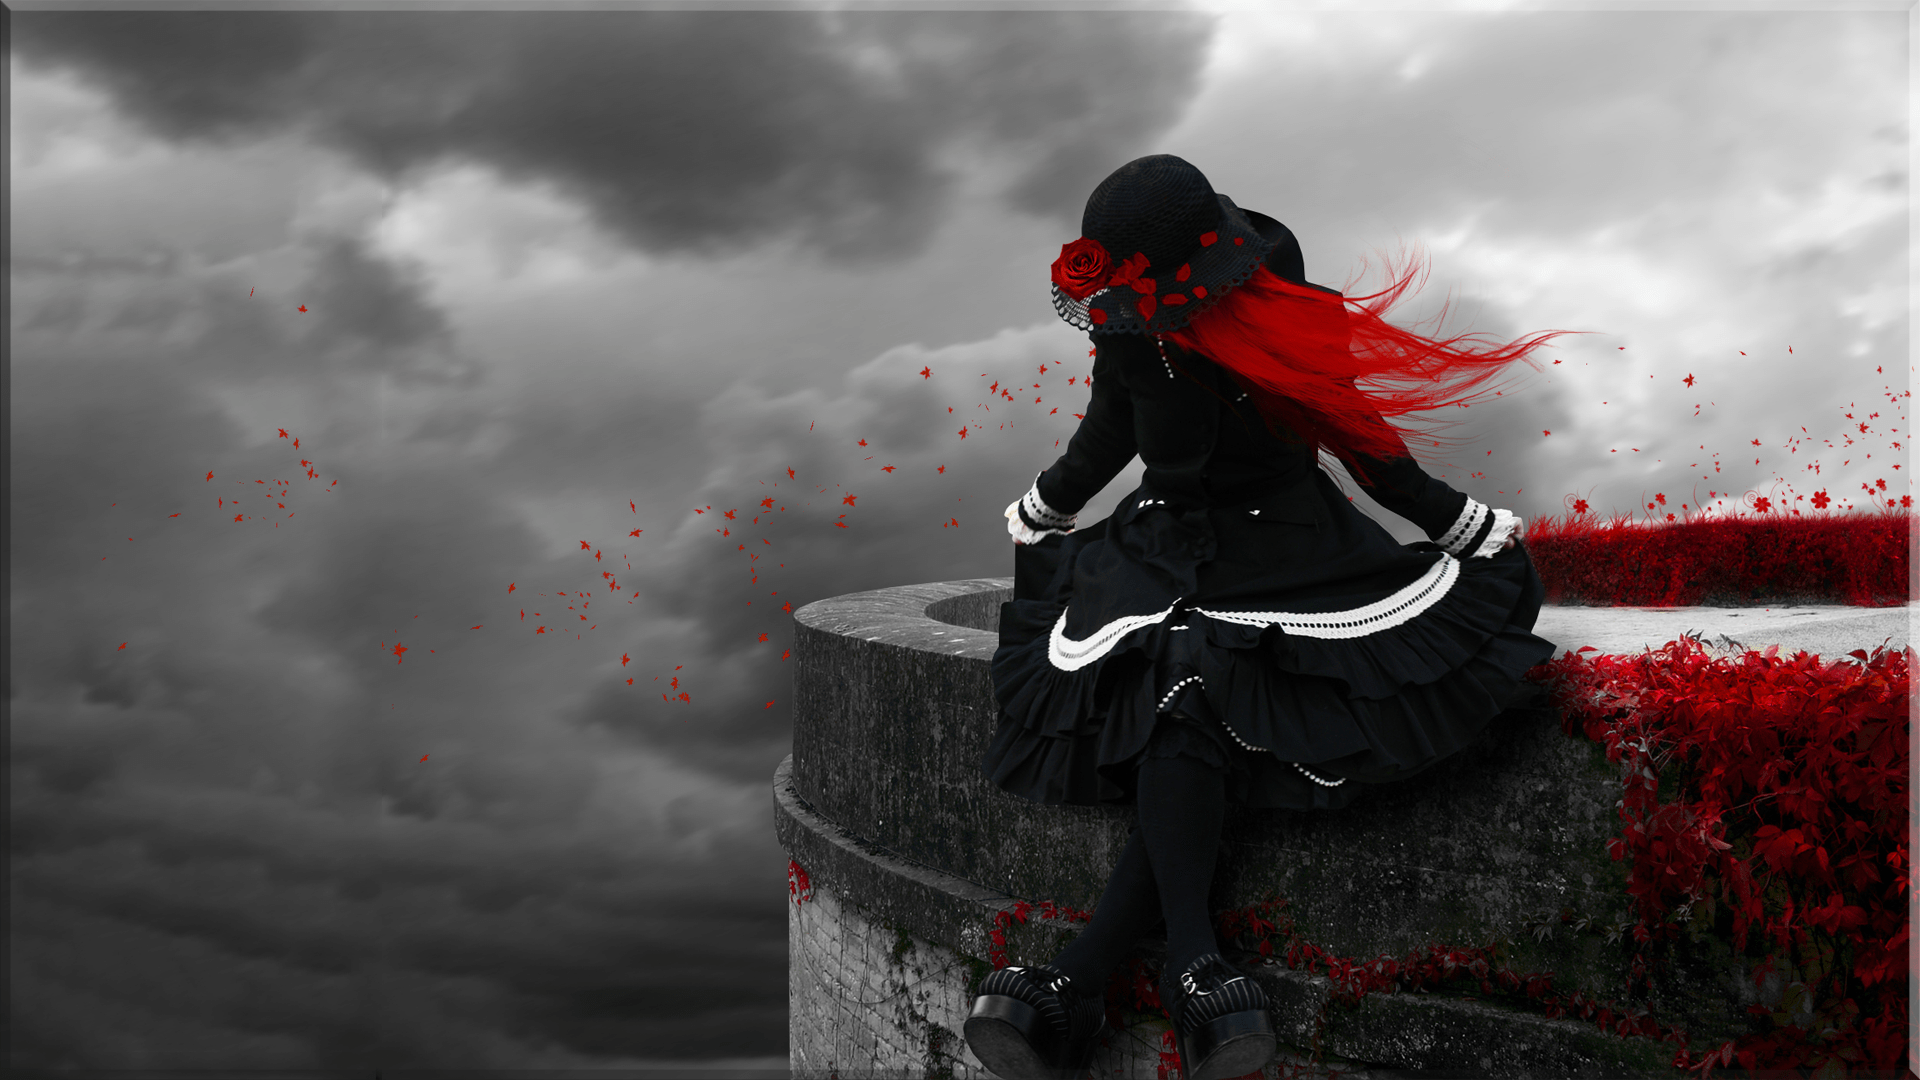 Goth Girl Wallpaper 1440x2960 Gothic Redhead Hd Wallpaper Background Image 1920x1080